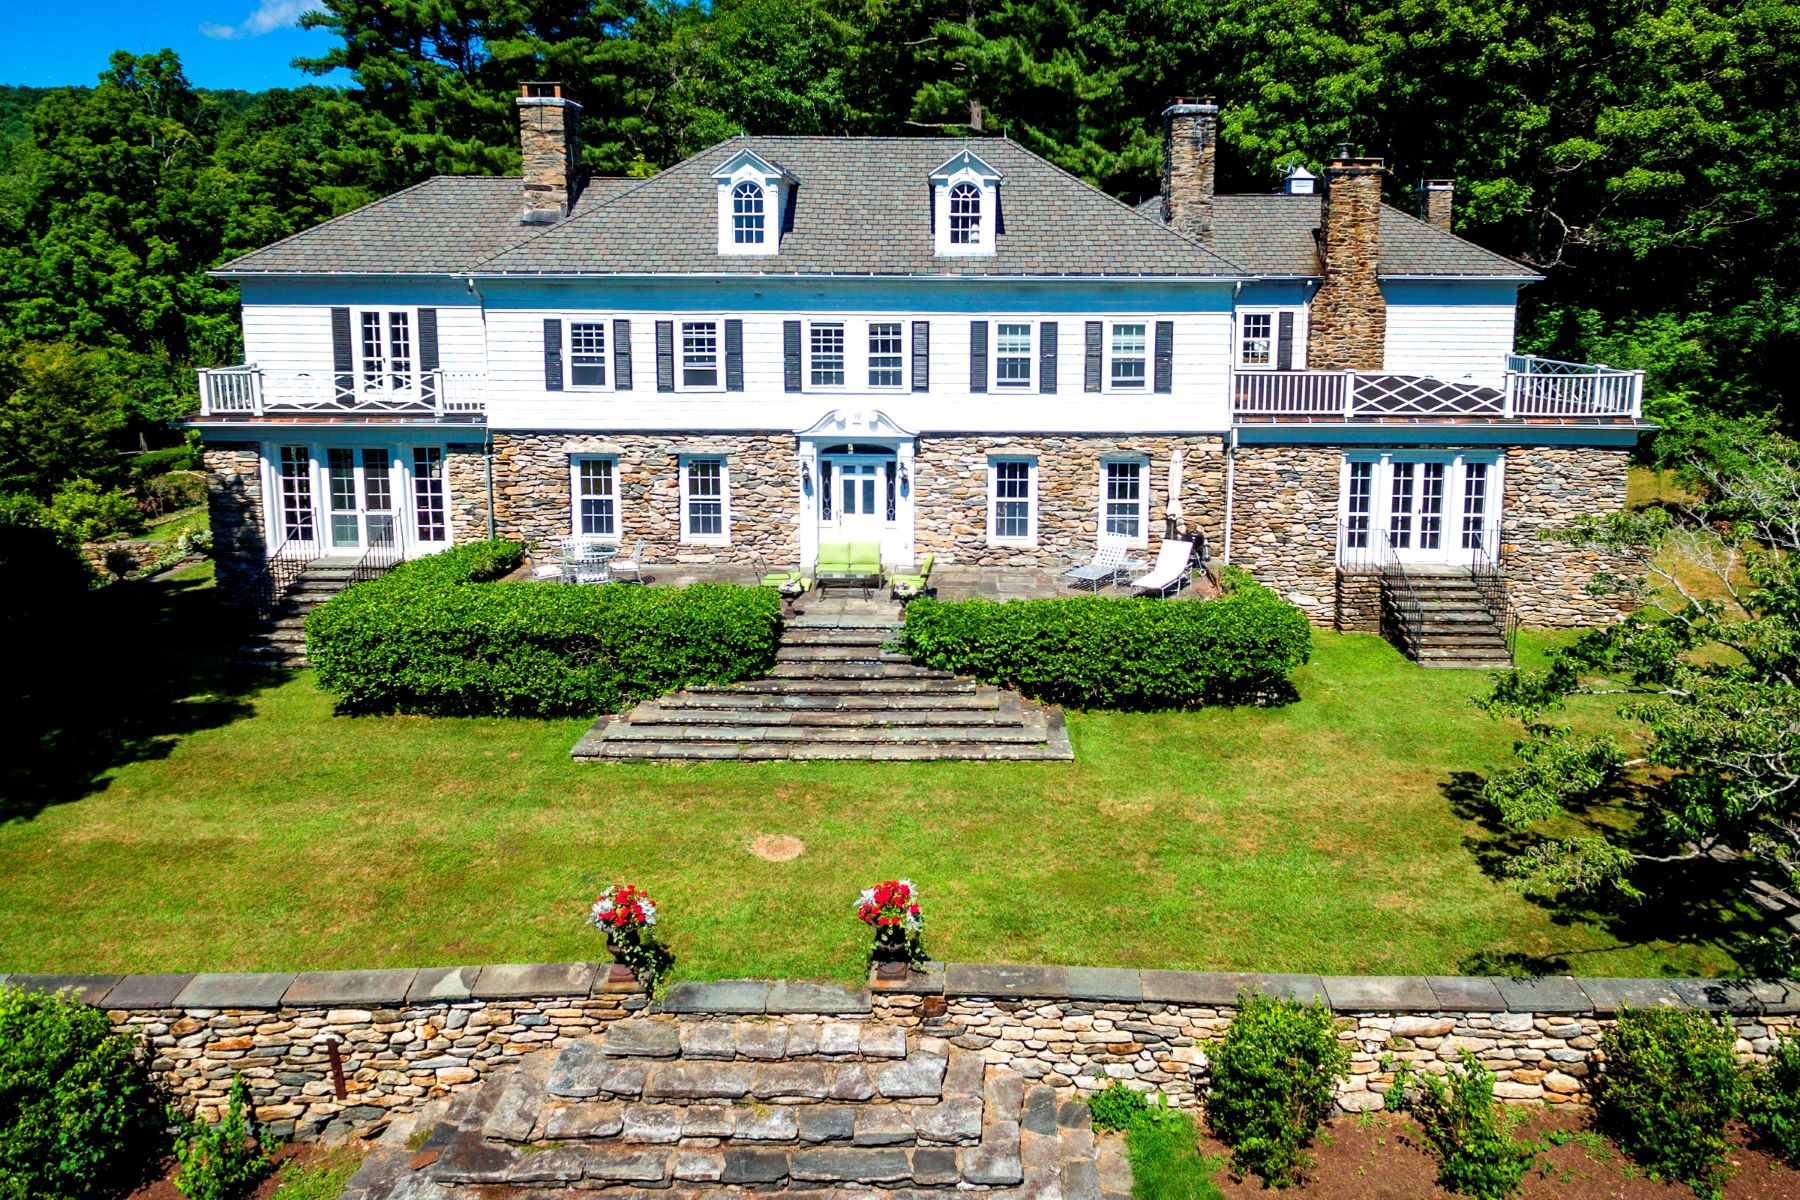 Casa Unifamiliar por un Venta en Spectacular Turn-of-the-Century Berkshire Estate 2 Brace Road Tyringham, Massachusetts 01264 Estados Unidos